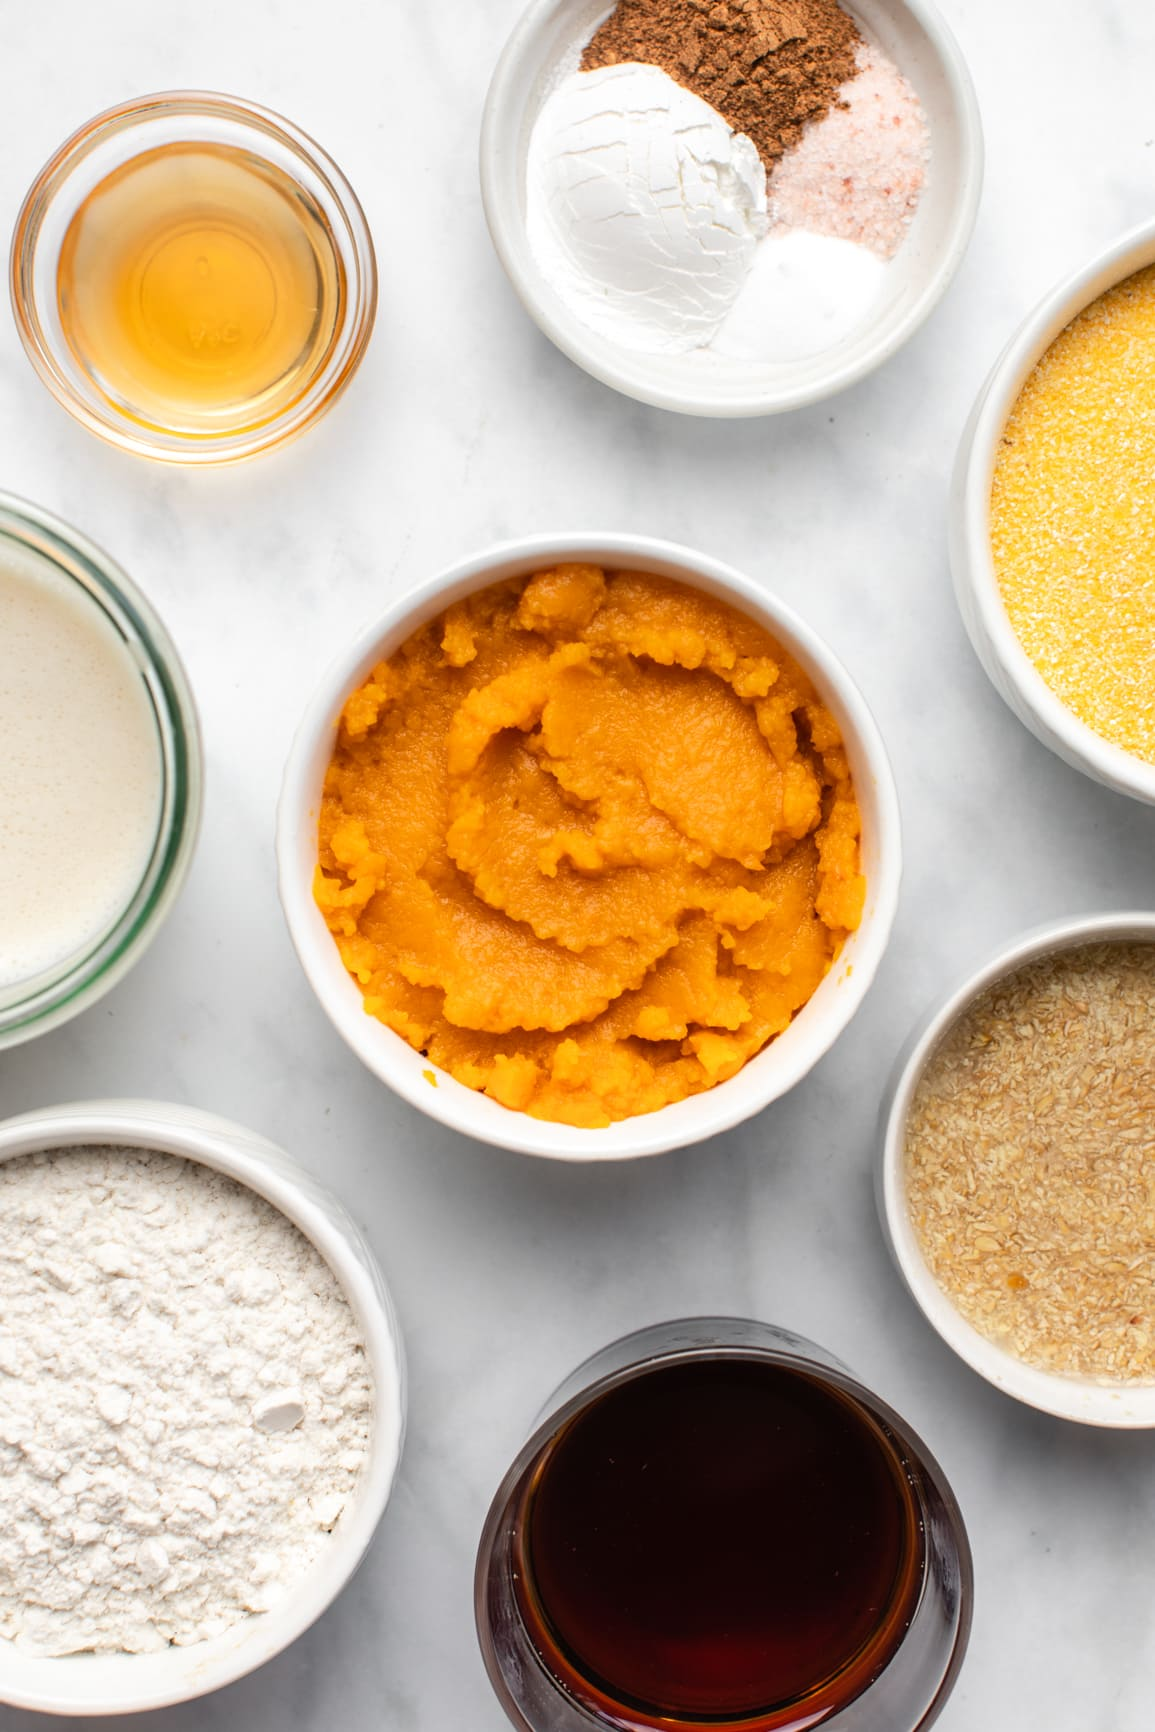 ingredients for pumpkin muffins in small white bowls on marble background